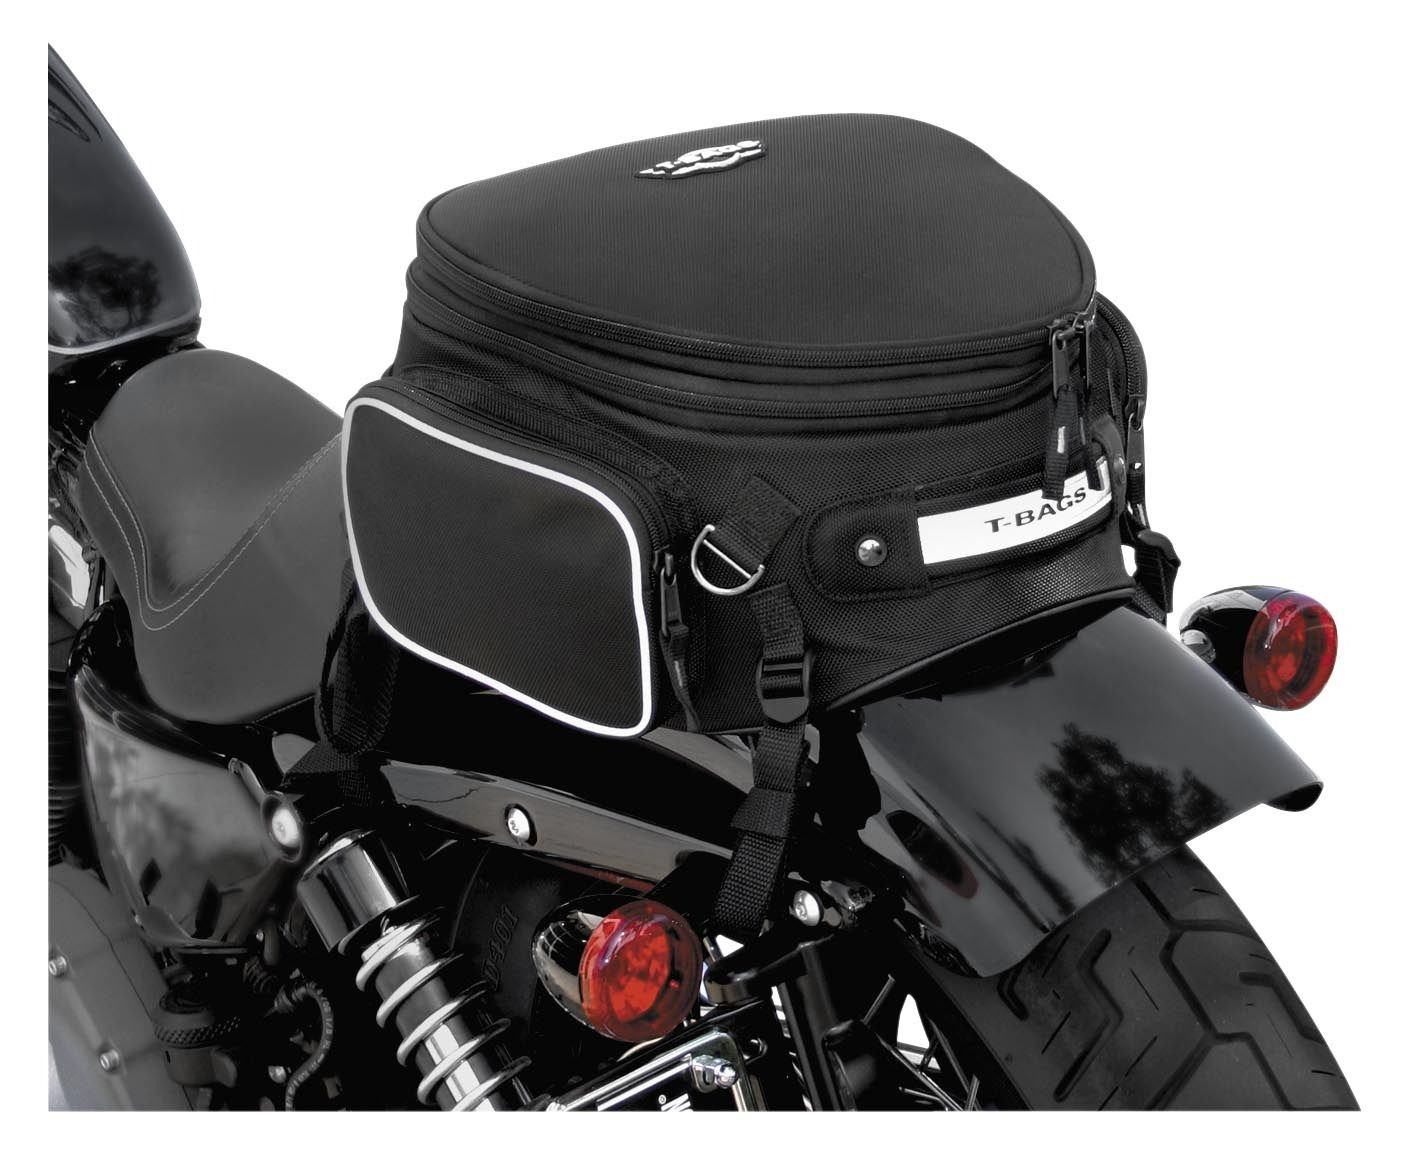 T Bags Sportster Bag 20 21 99 Off Revzilla